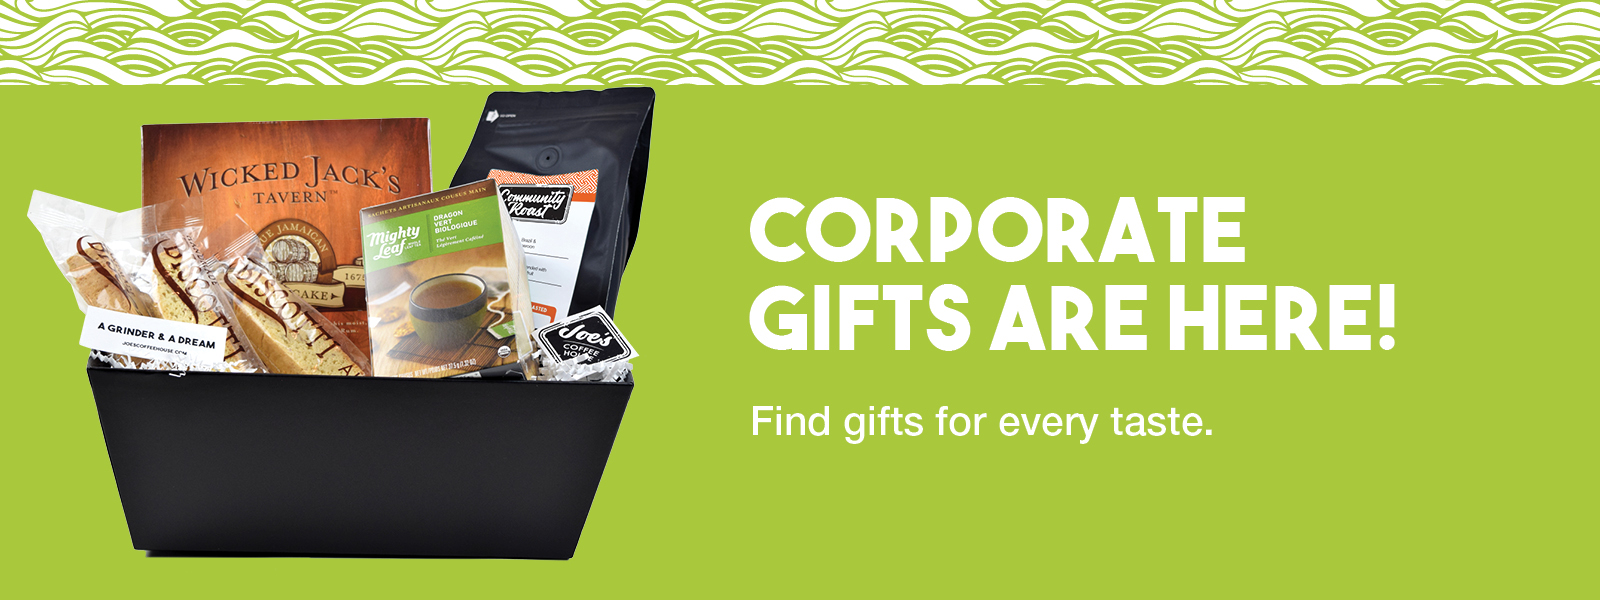 Check out our corporate gifts!